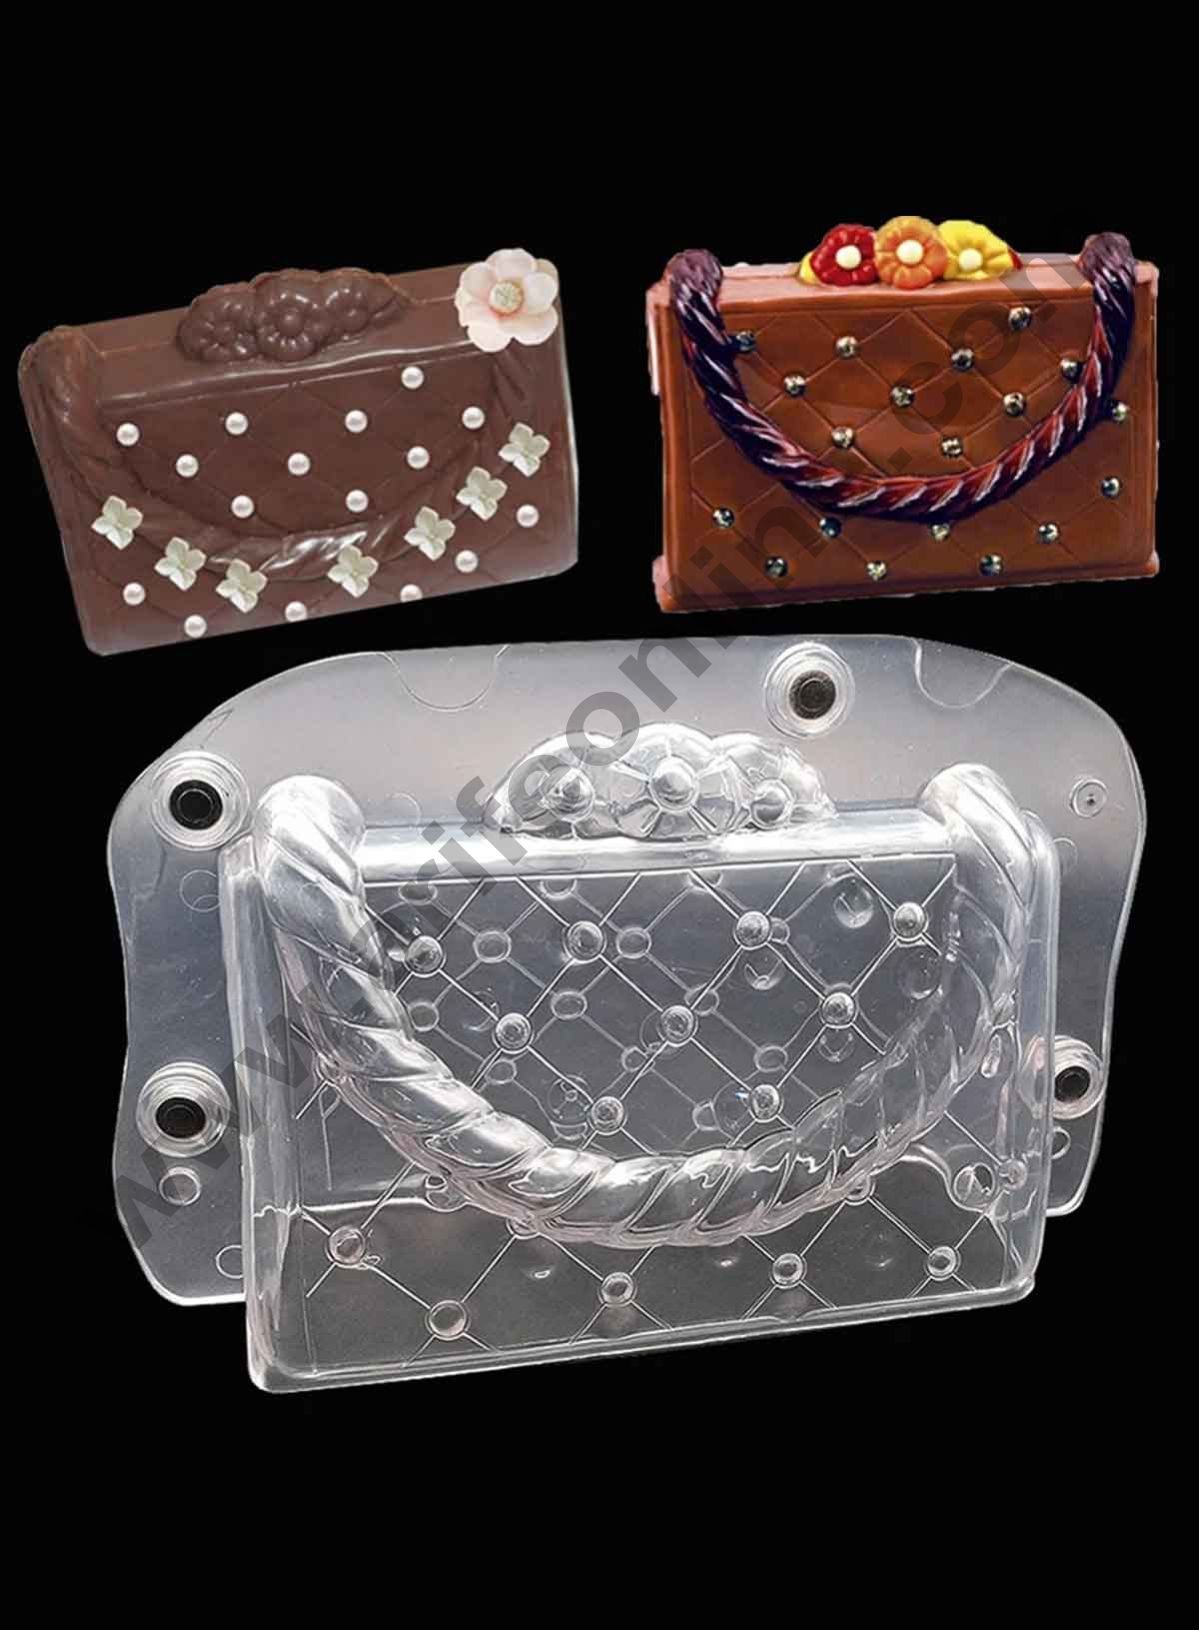 Cake Decor Polycarbonate 3D Ladies Purse Wallet Chocolate Mold Cake Decorating Chocolate Mould Tools